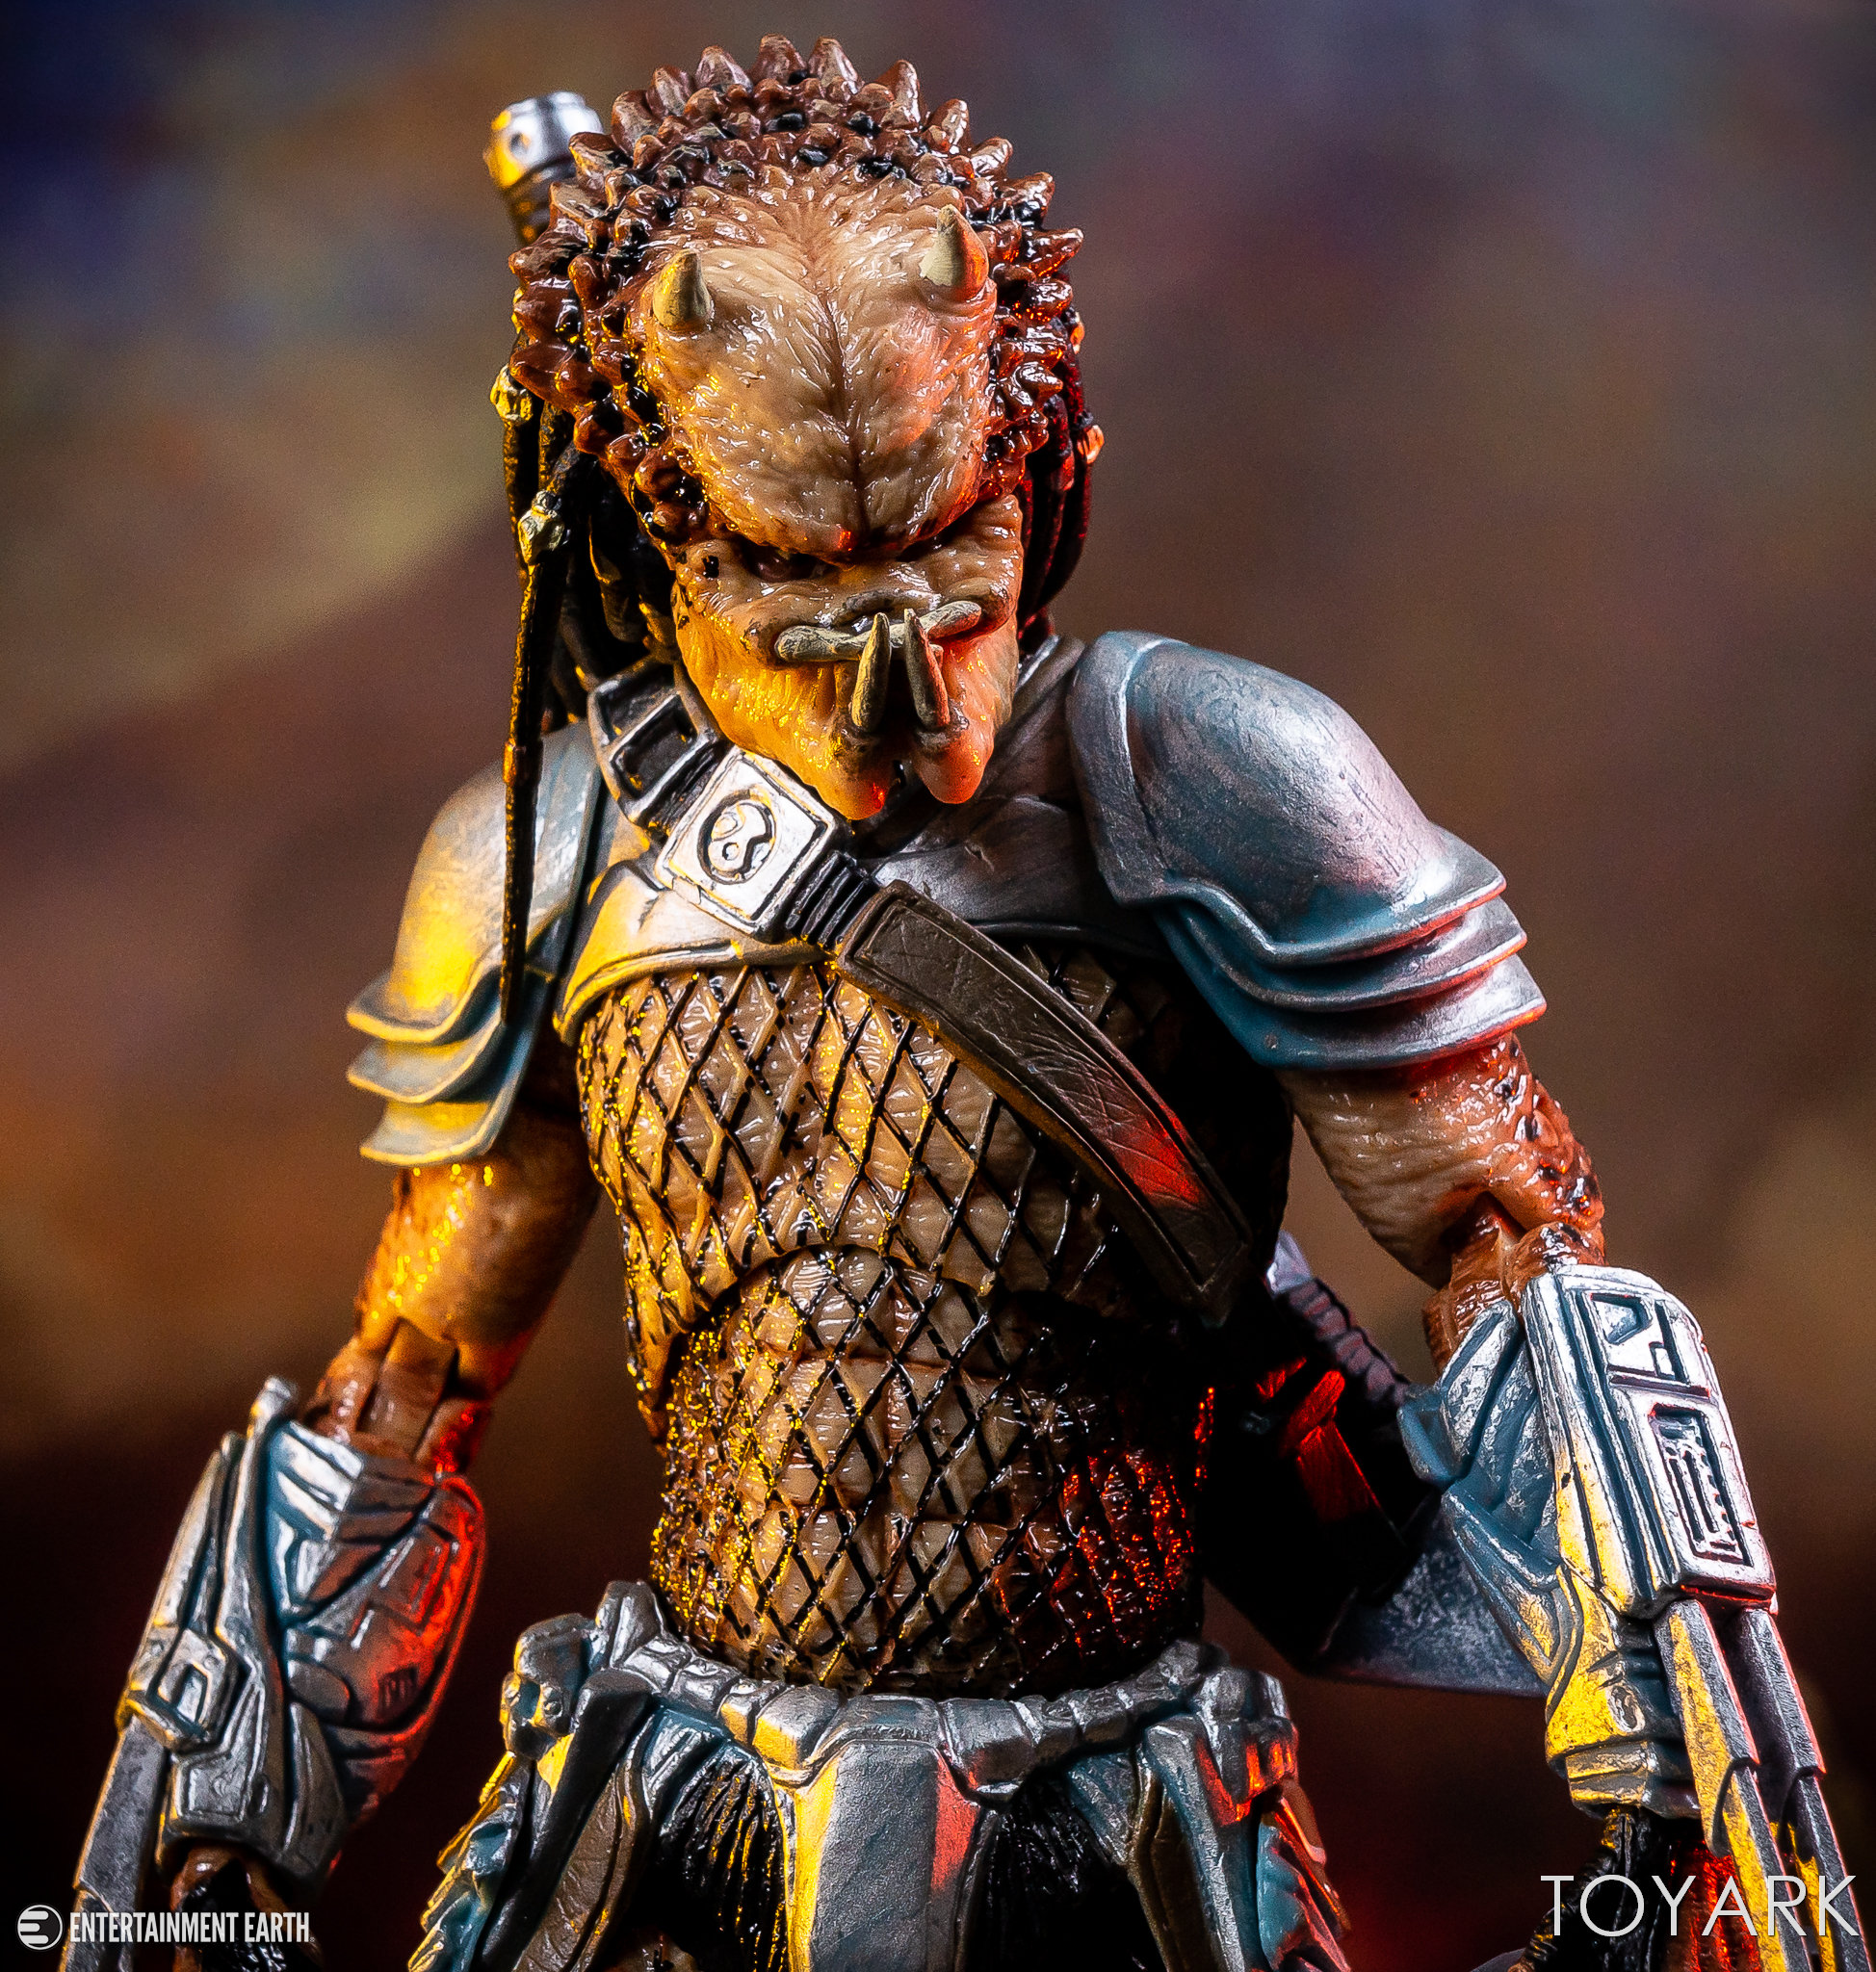 https://news.toyark.com/wp-content/uploads/sites/4/2019/01/Predator-NECA-Series-18-Figures-061.jpg